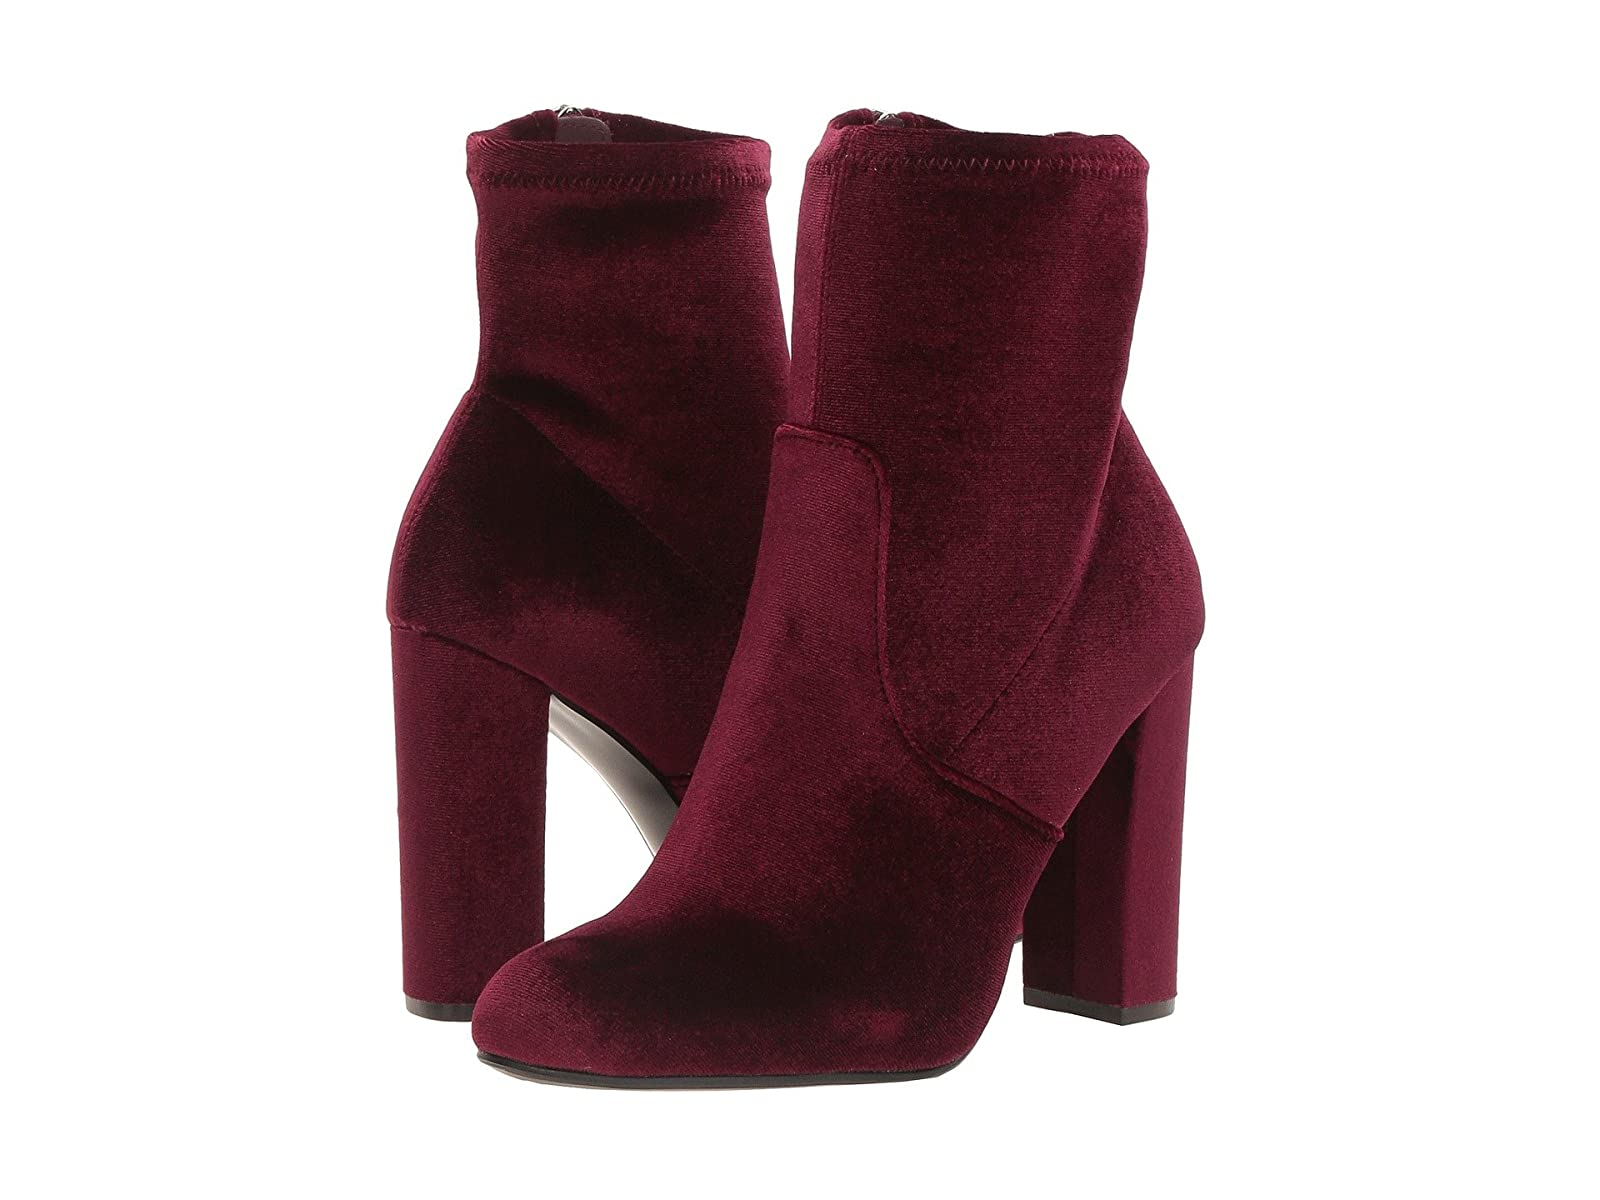 Steve Madden EditCheap and distinctive eye-catching shoes